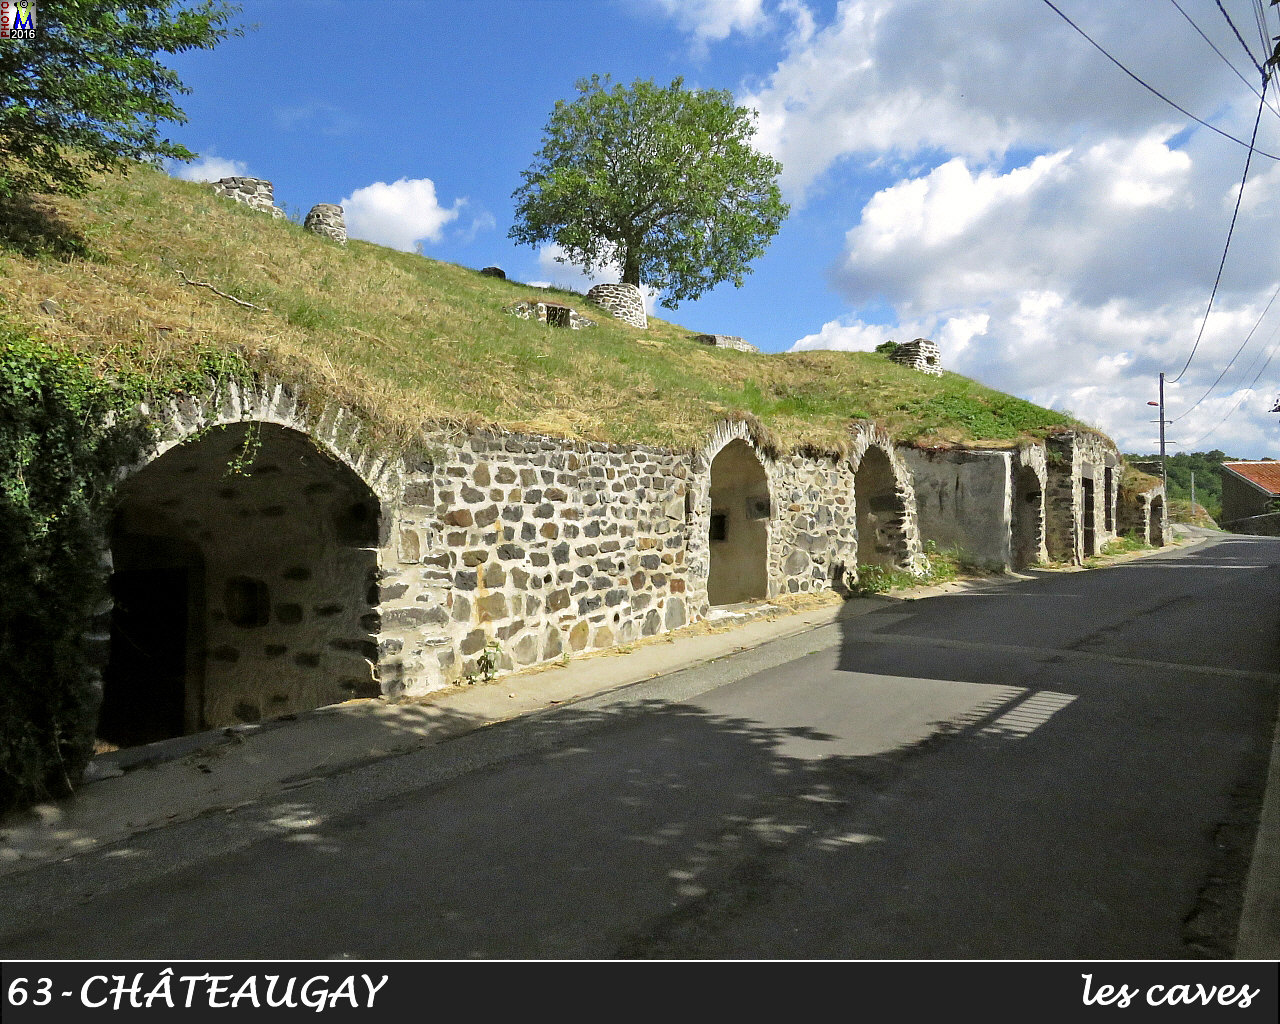 63CHATEAUGAY_caves_106.jpg